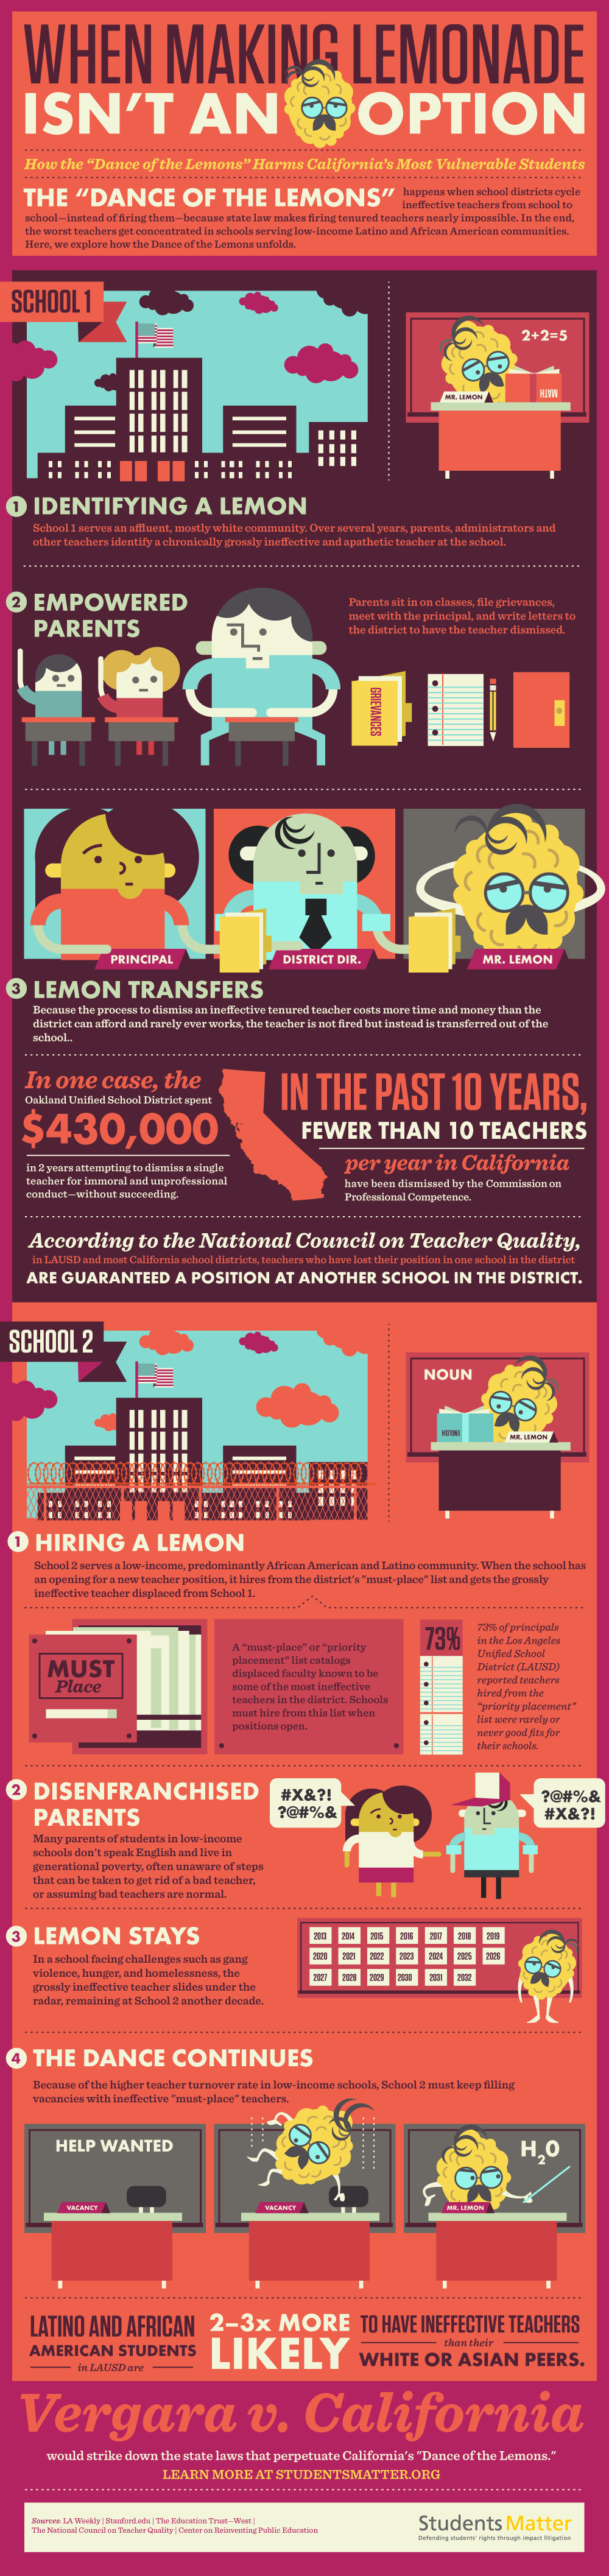 Infographic: When Making Lemonade Isn't an Option